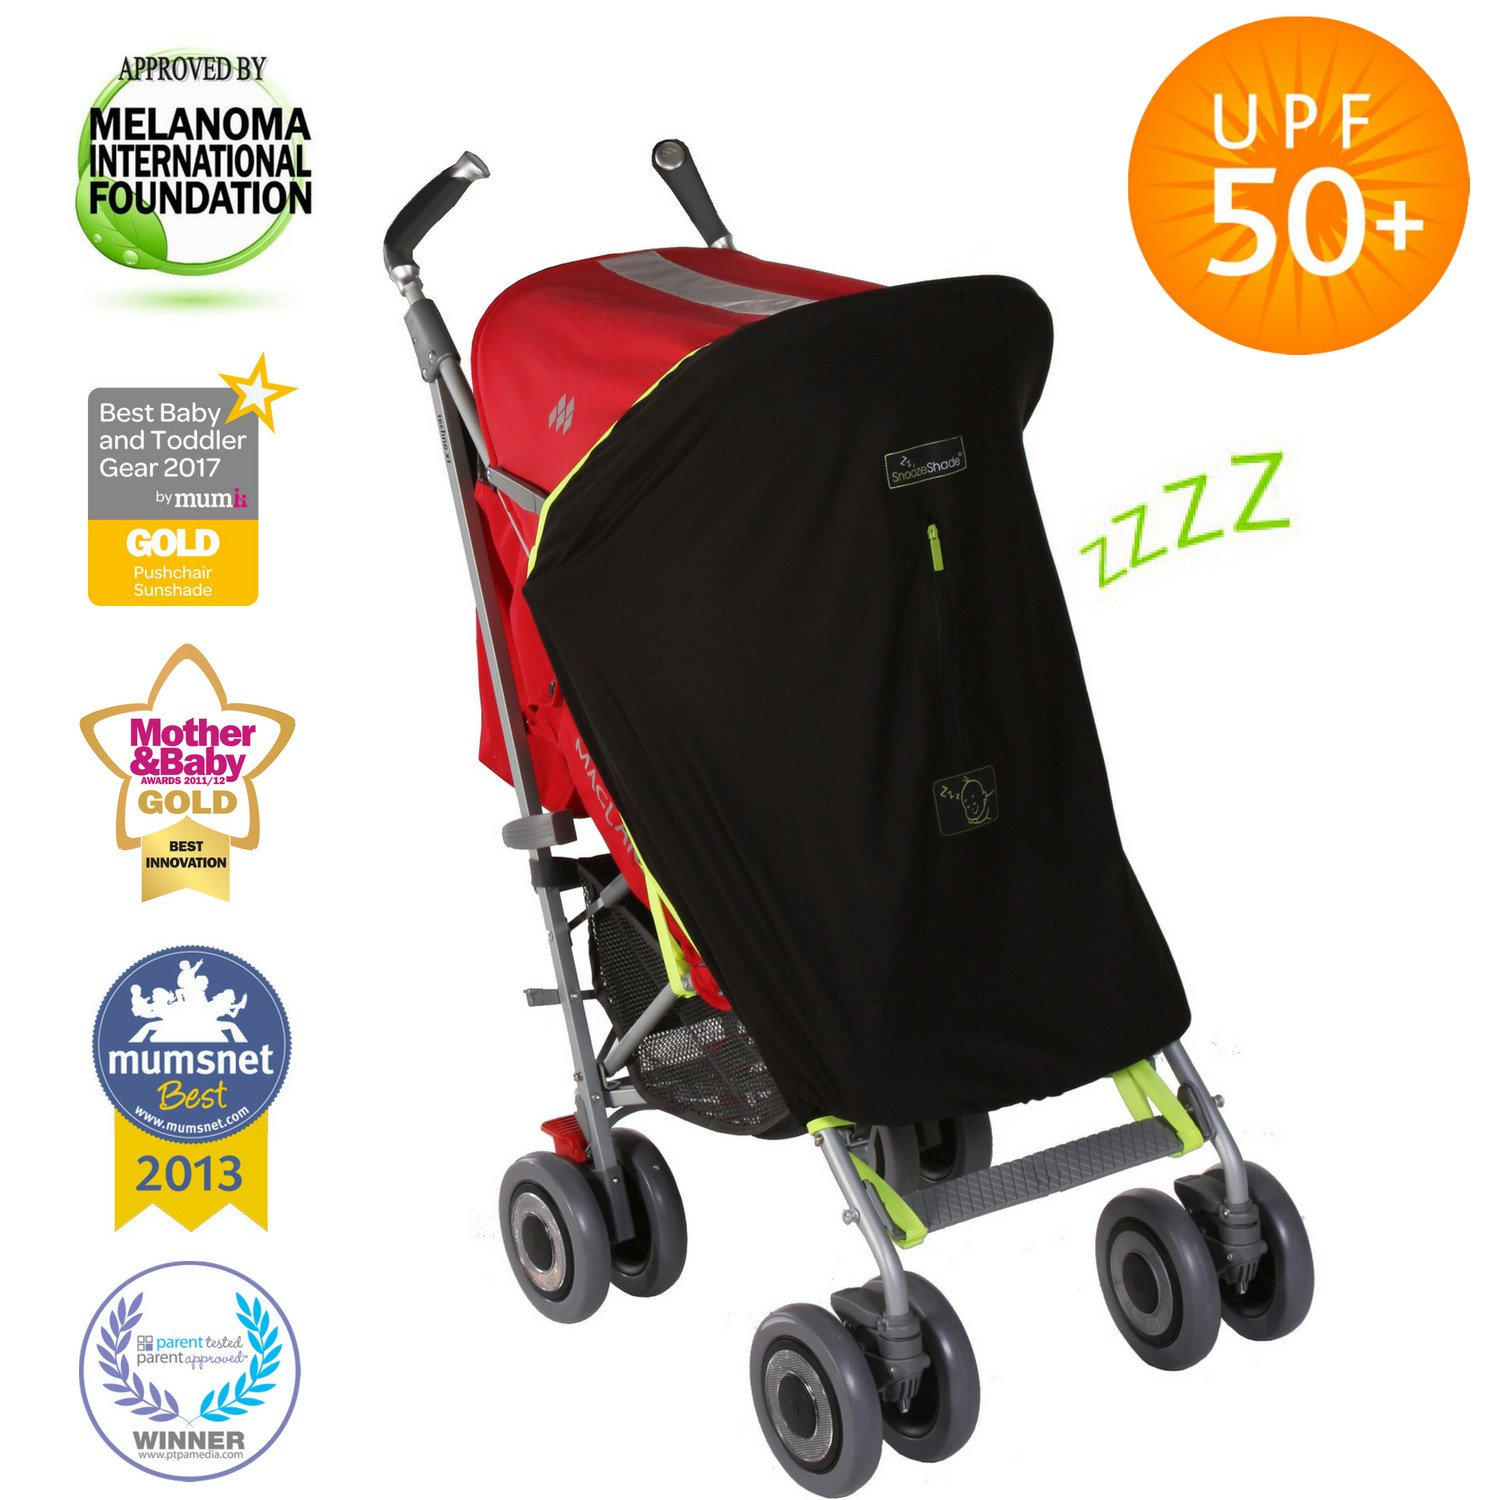 SnoozeShade Original | Stroller sunshade and blackout blind | Blocks 99% of UV | Air-permeable and universal fit SOG